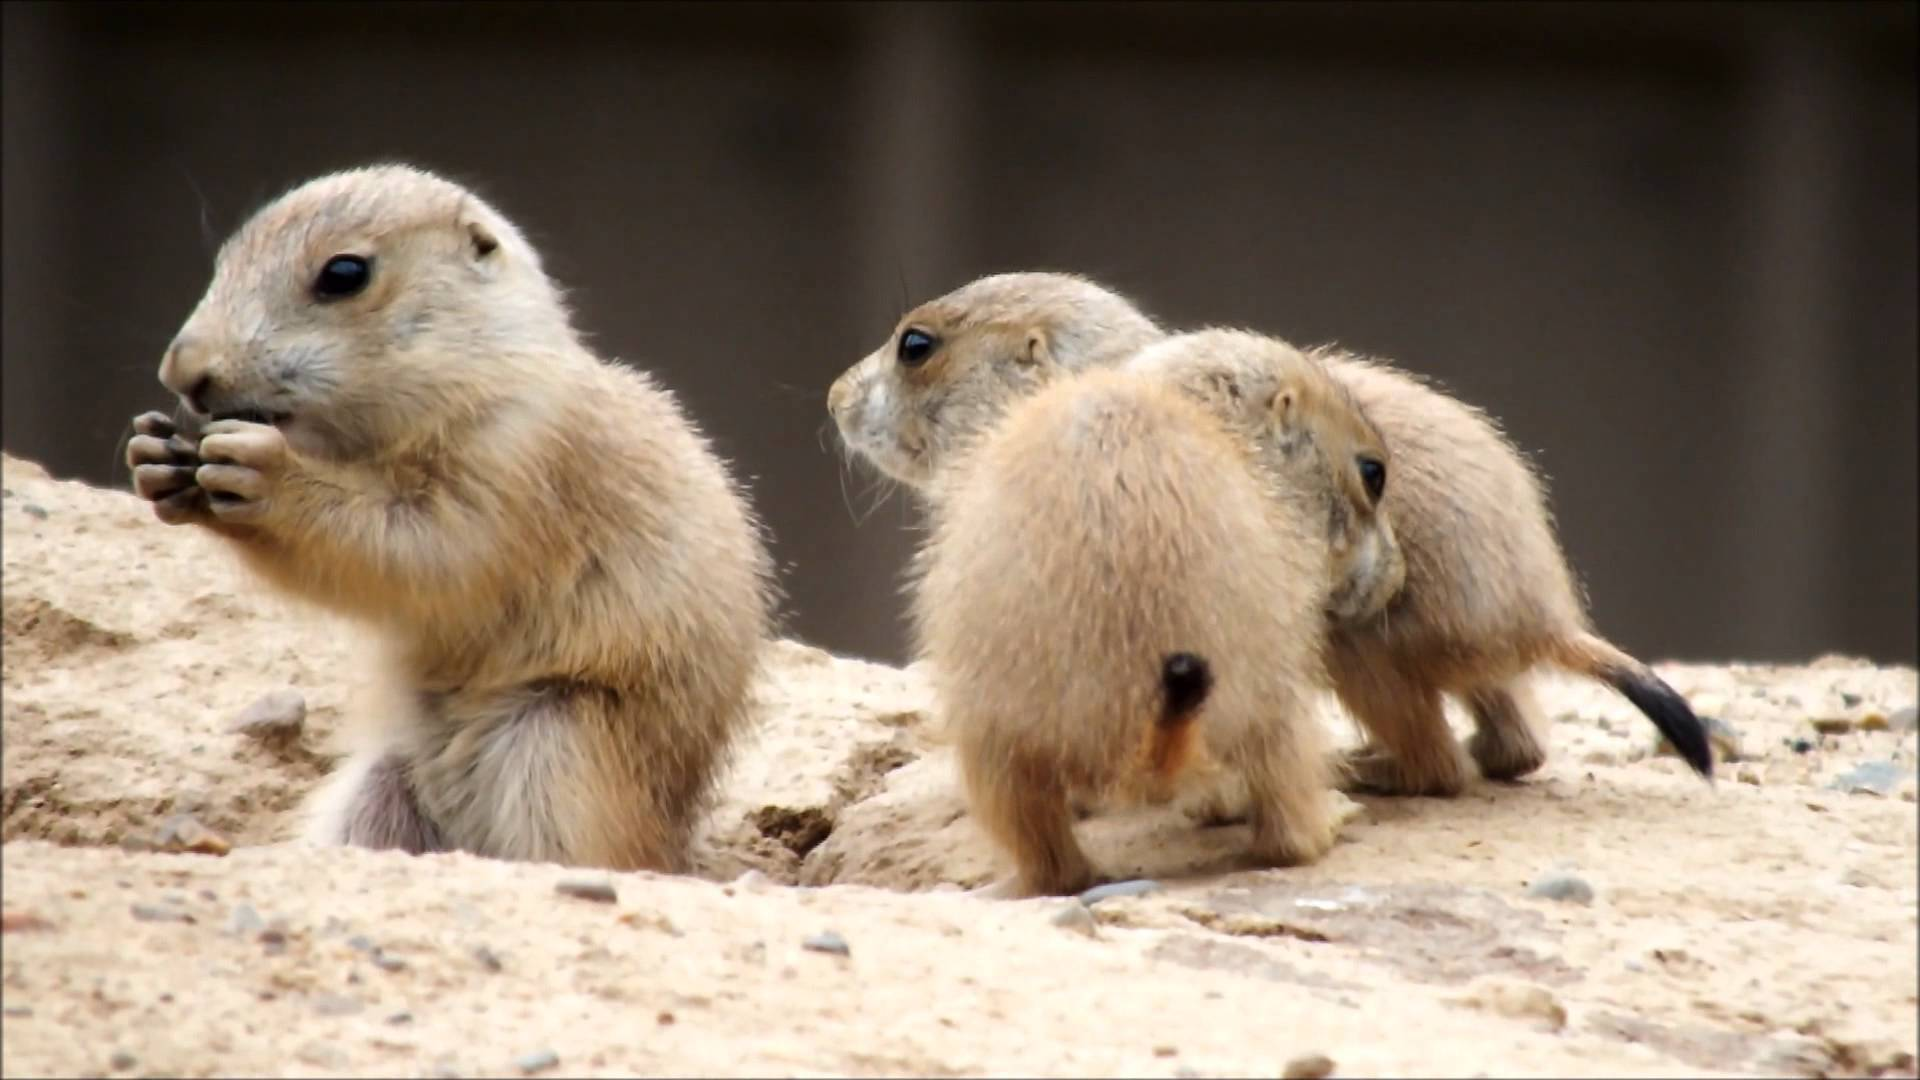 Baby Prairie Dogs at the Minnesota Zoo CUTE OVERLOAD!